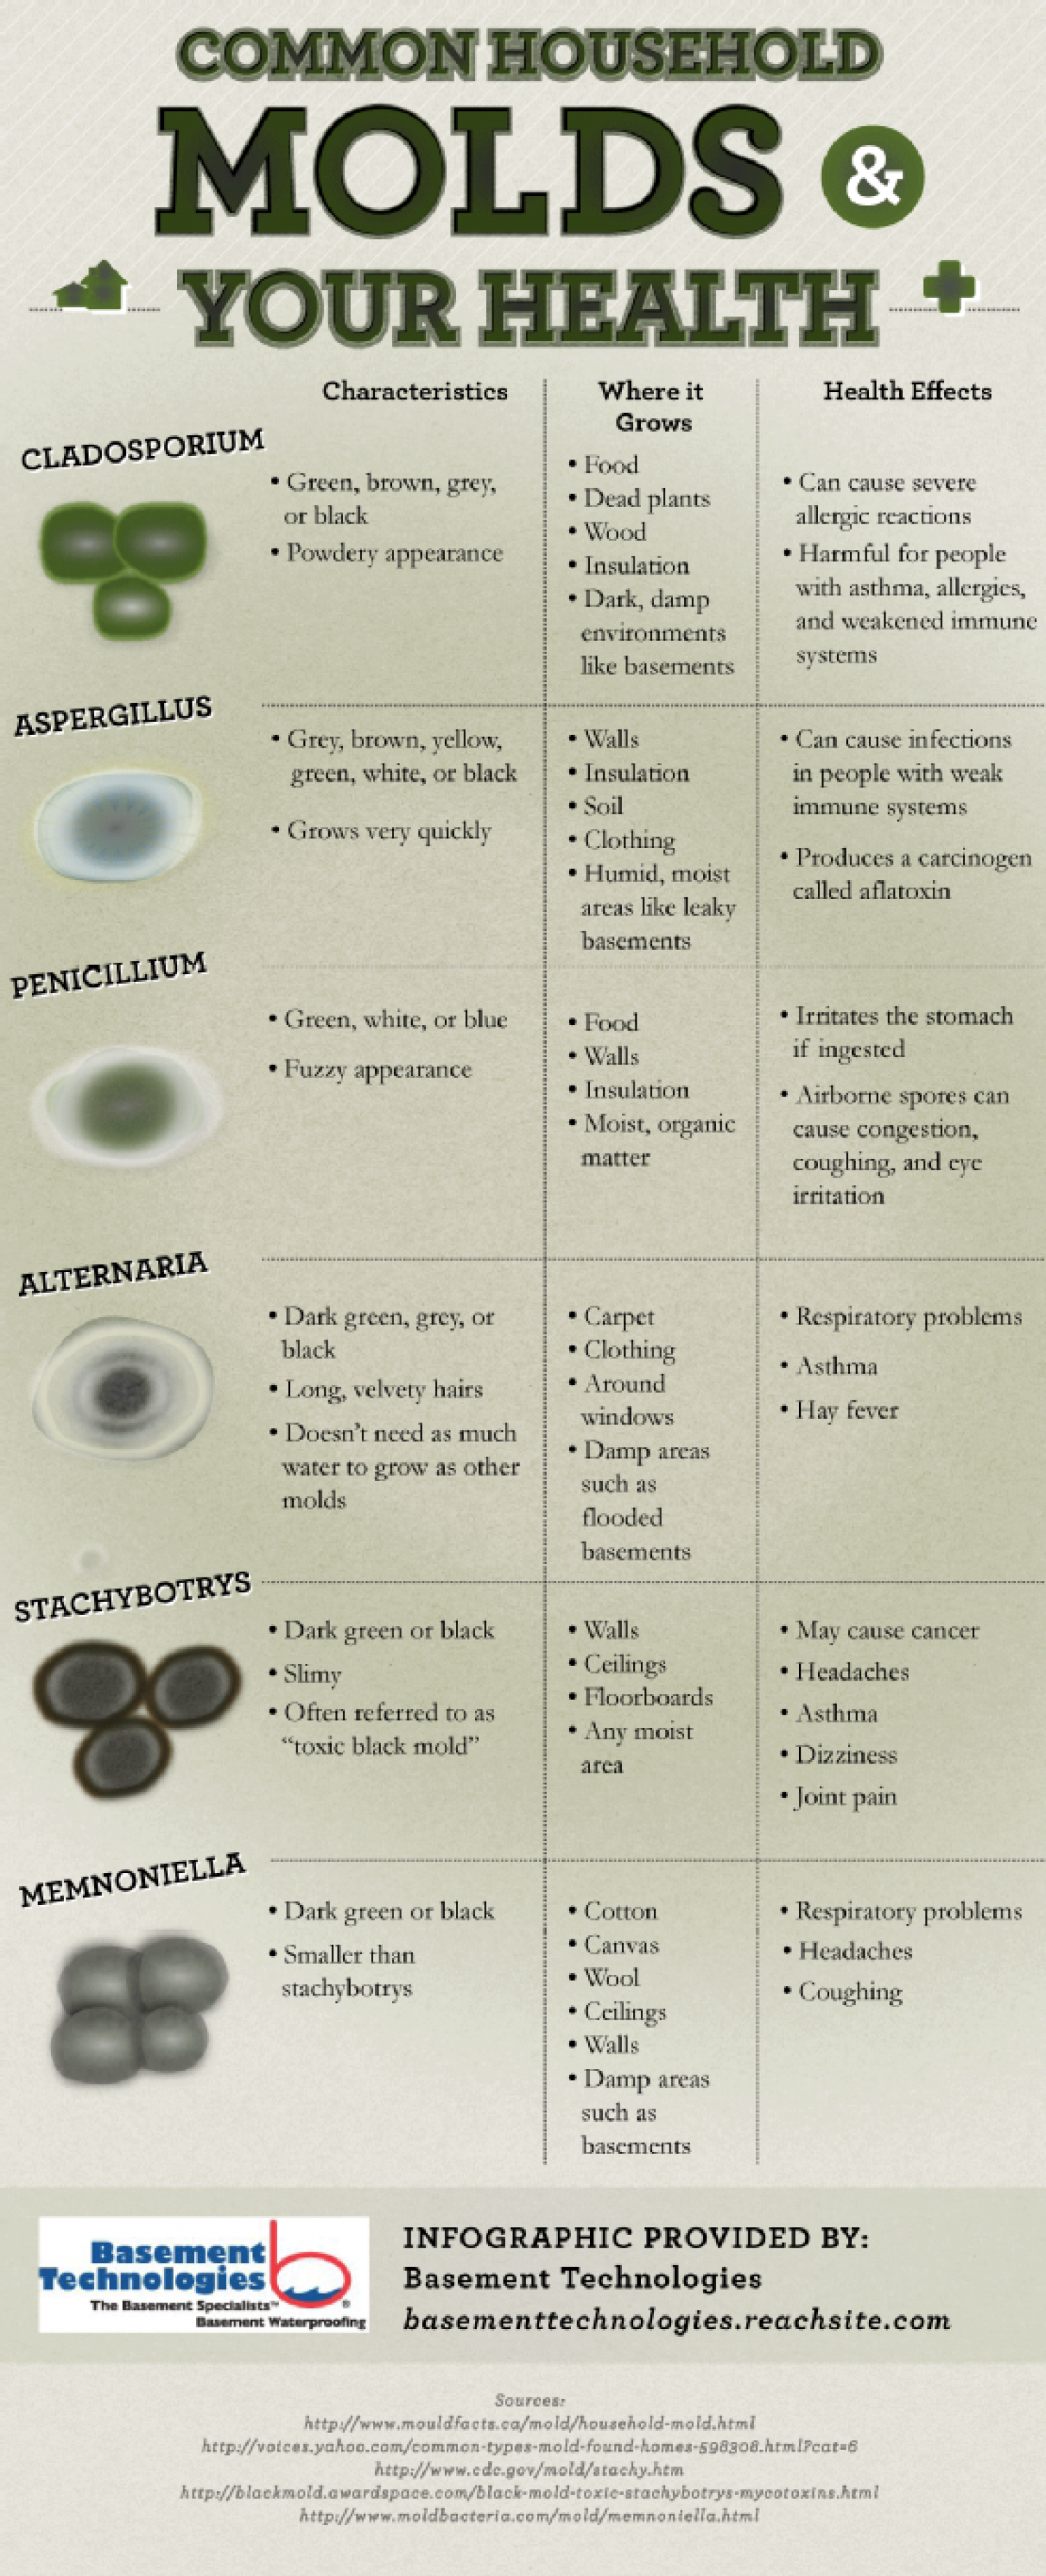 Common Household Molds and Your Health Infographic